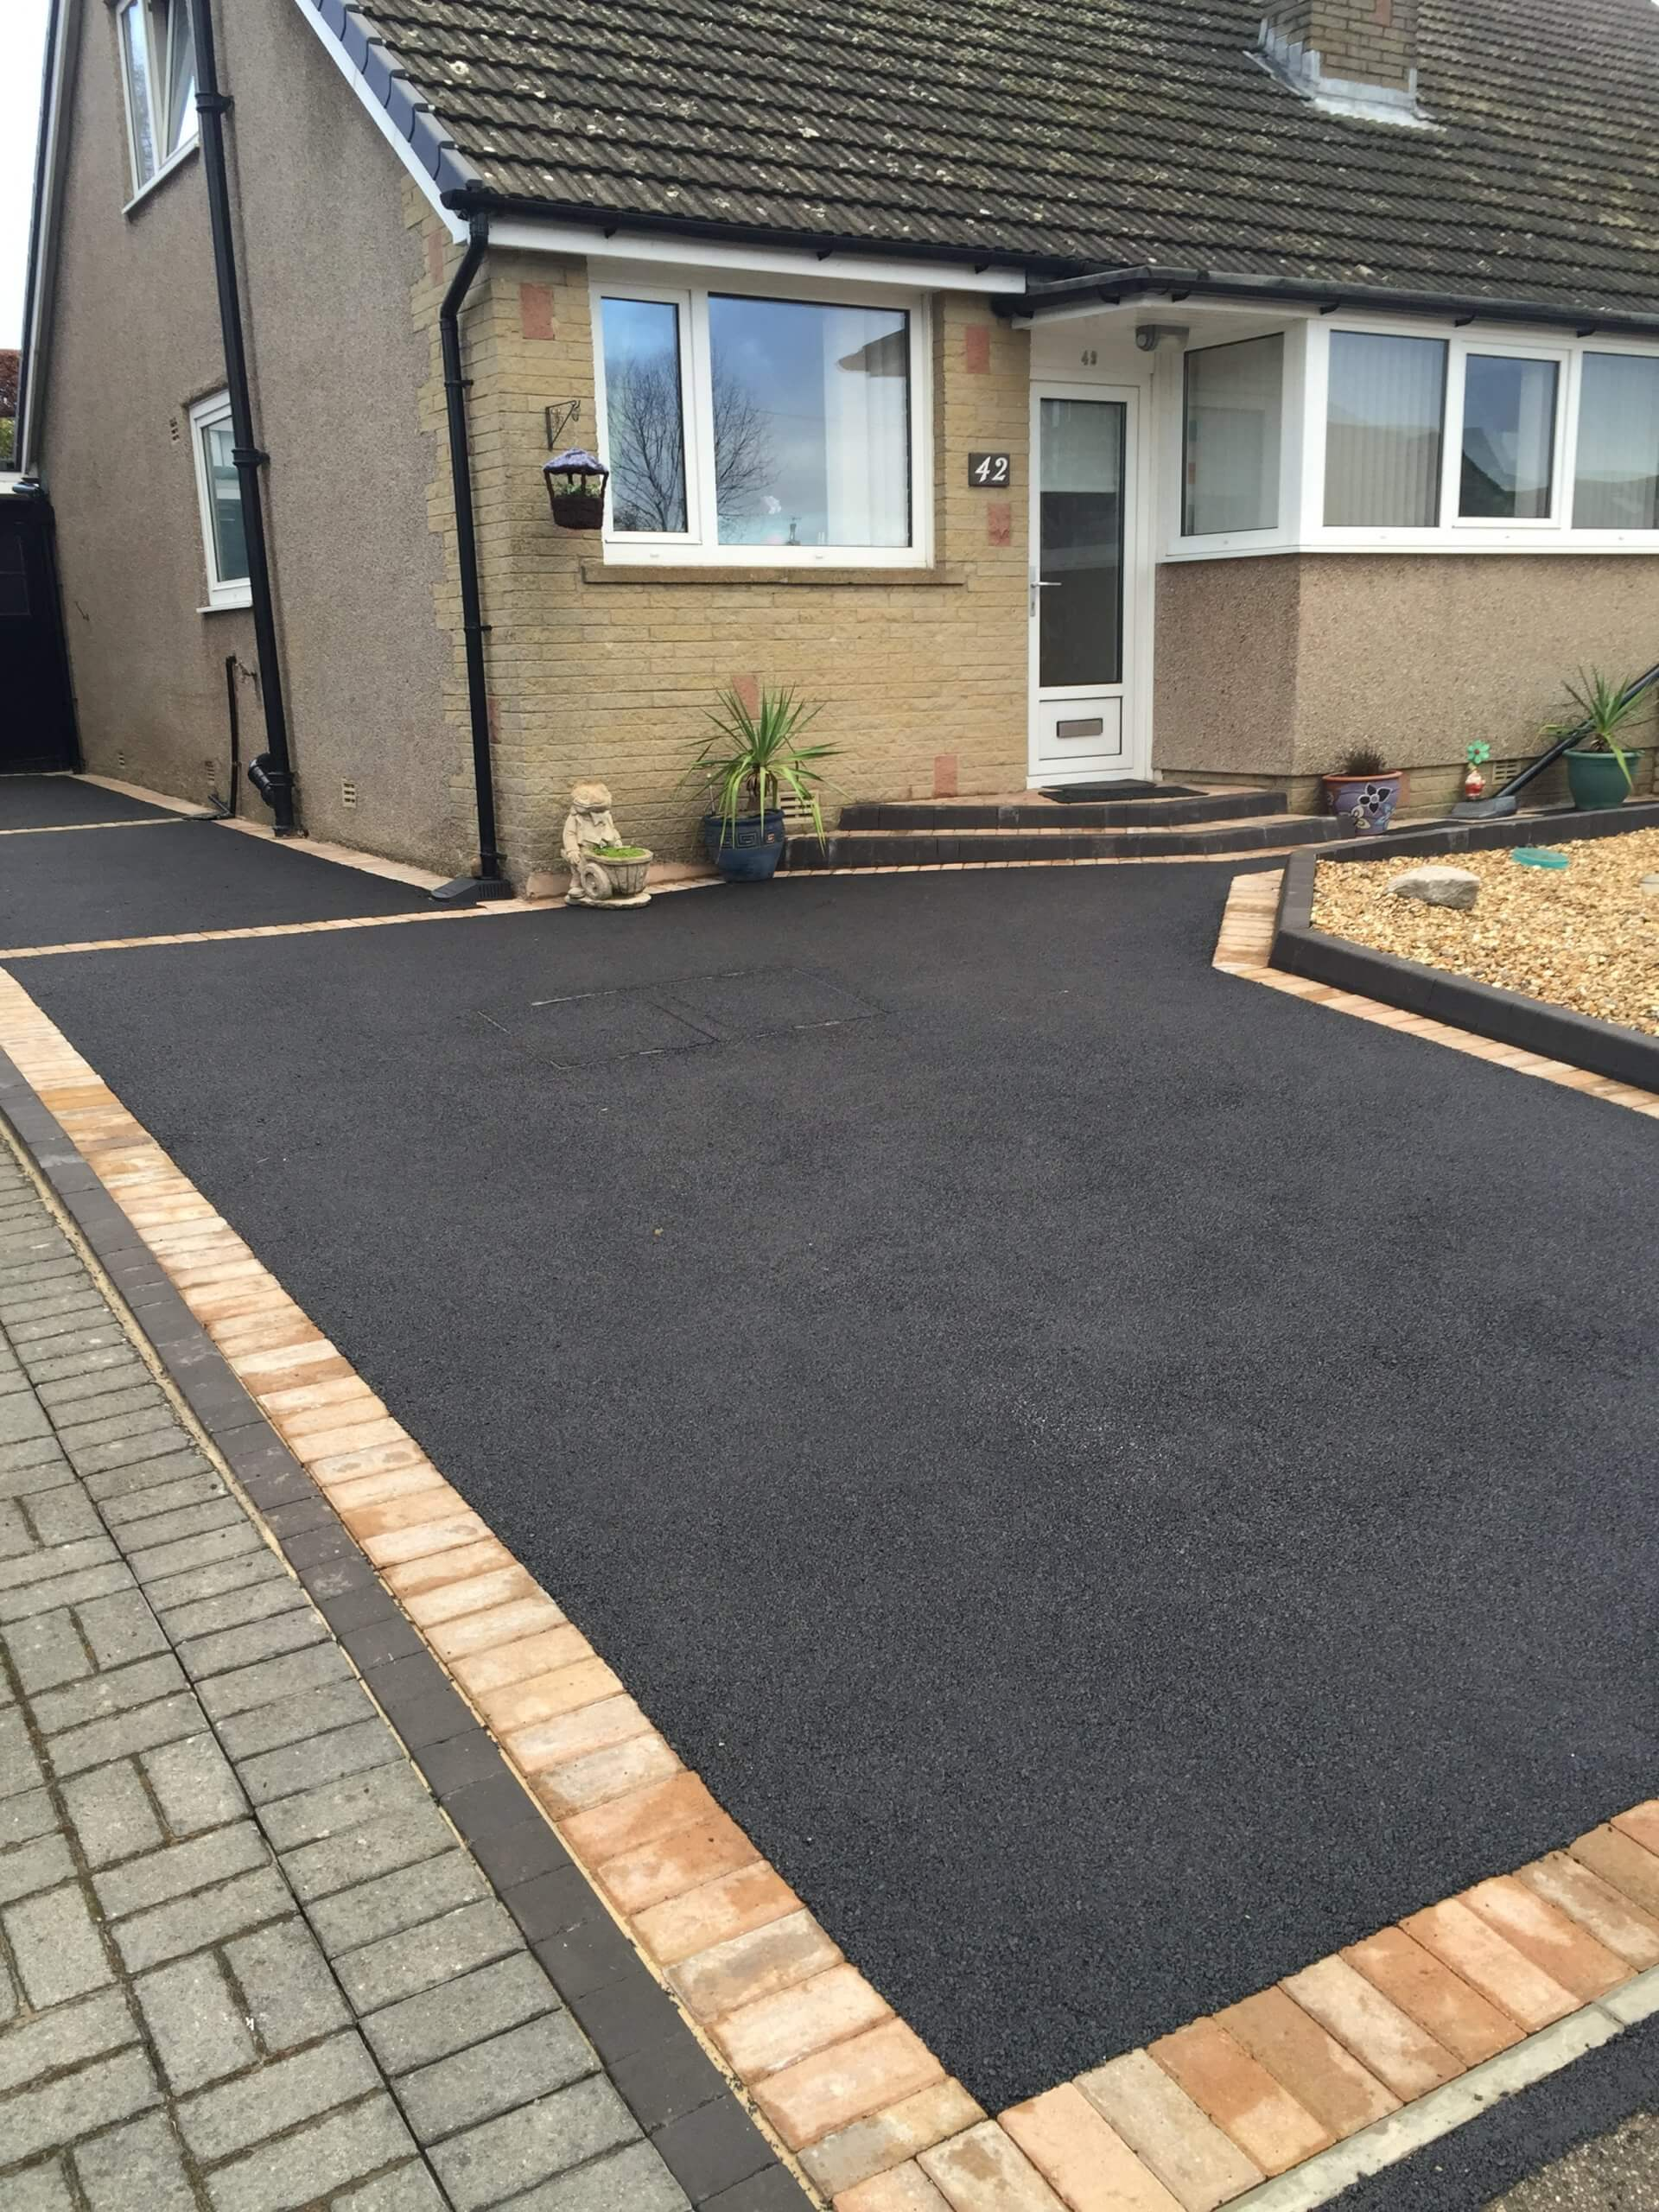 Tarmac Driveway in Lancaster with Block Paving Picture Frame Effect